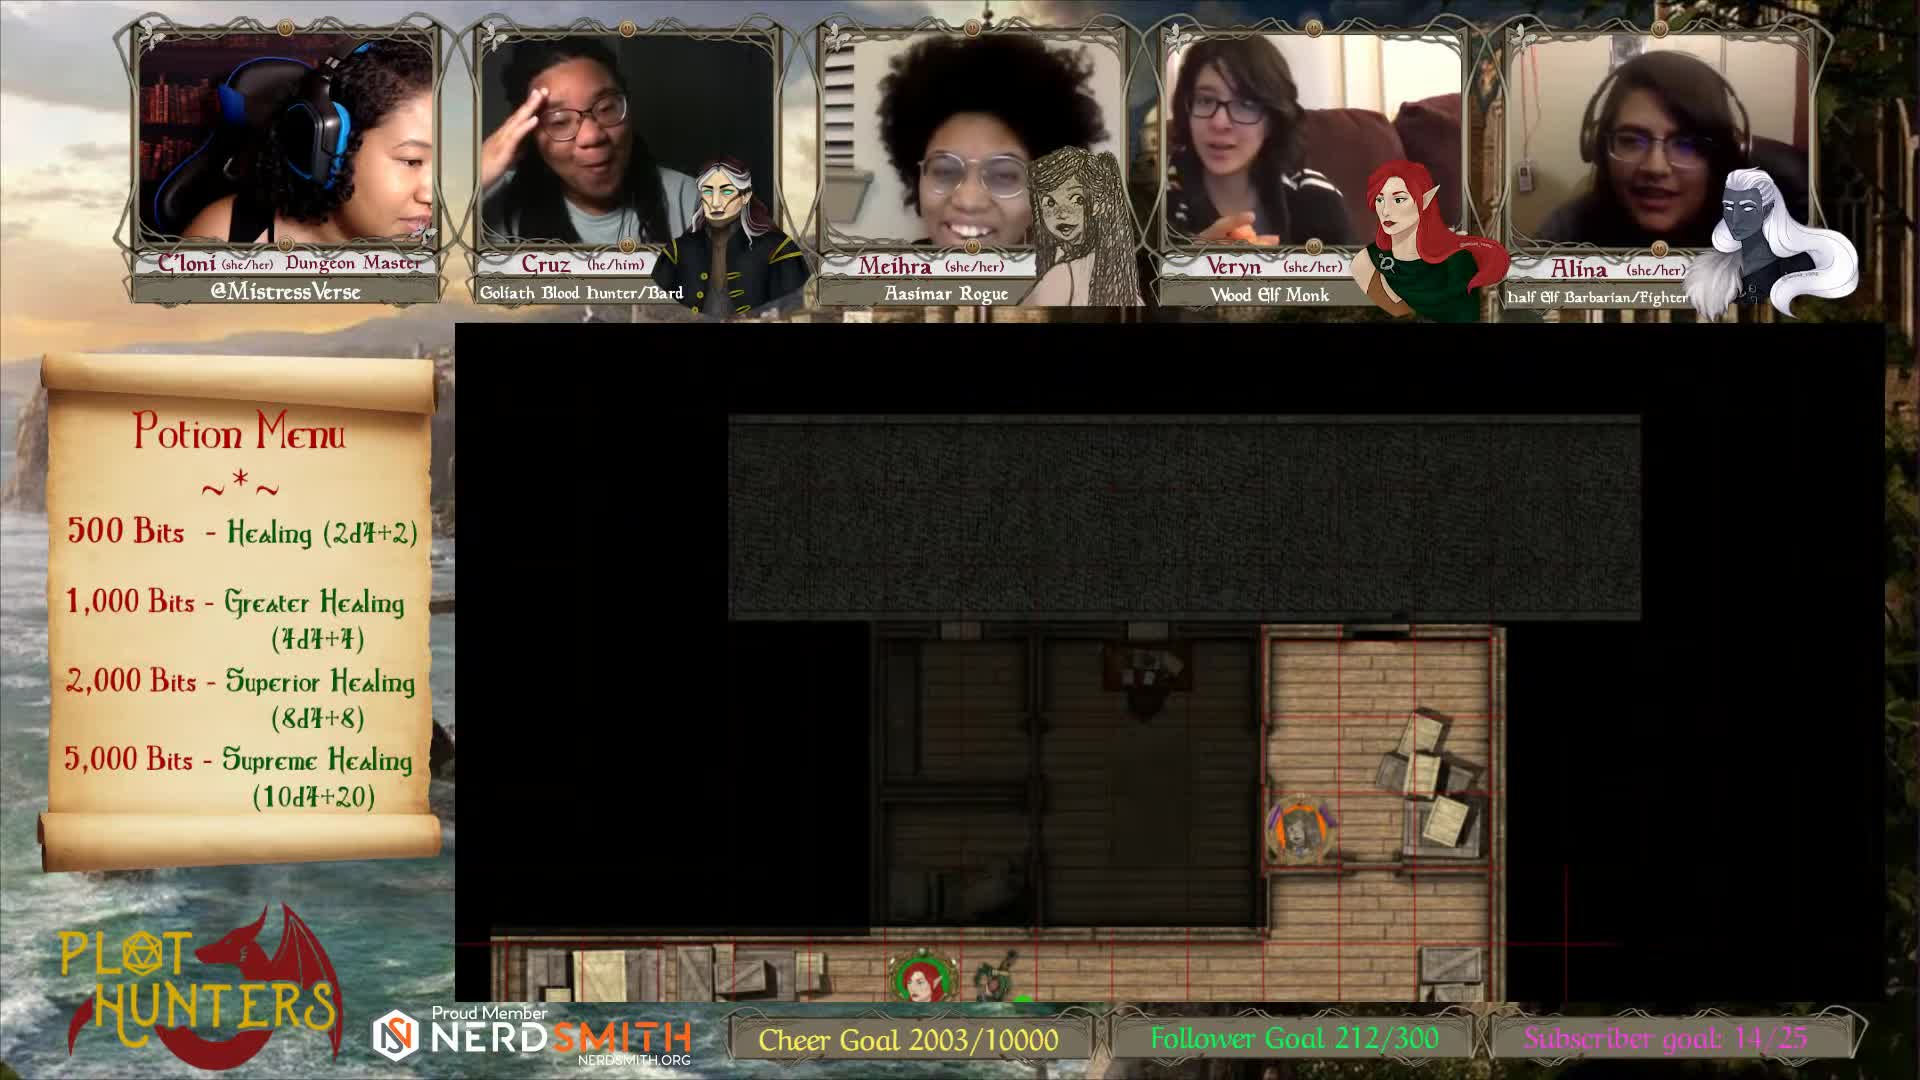 Gaming, Plot Hunters, actual play, d&d, dnd, dungeons and dragons, rpg, ttrpg, twitch, Highlight: The Nemu Conspiracy GIFs